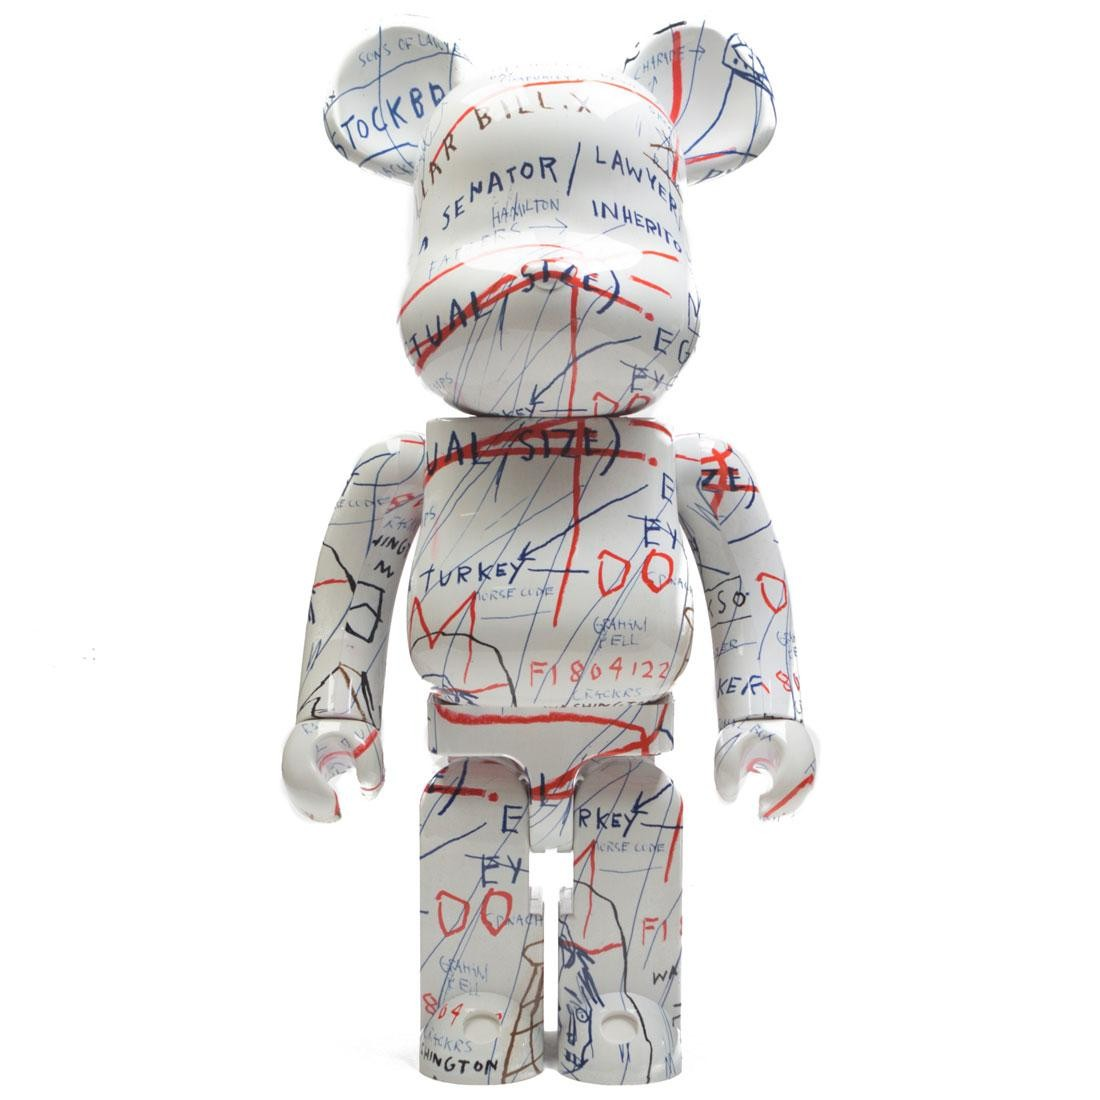 Medicom Jean-Michel Basquiat #2 1000% Bearbrick Figure (white / red)